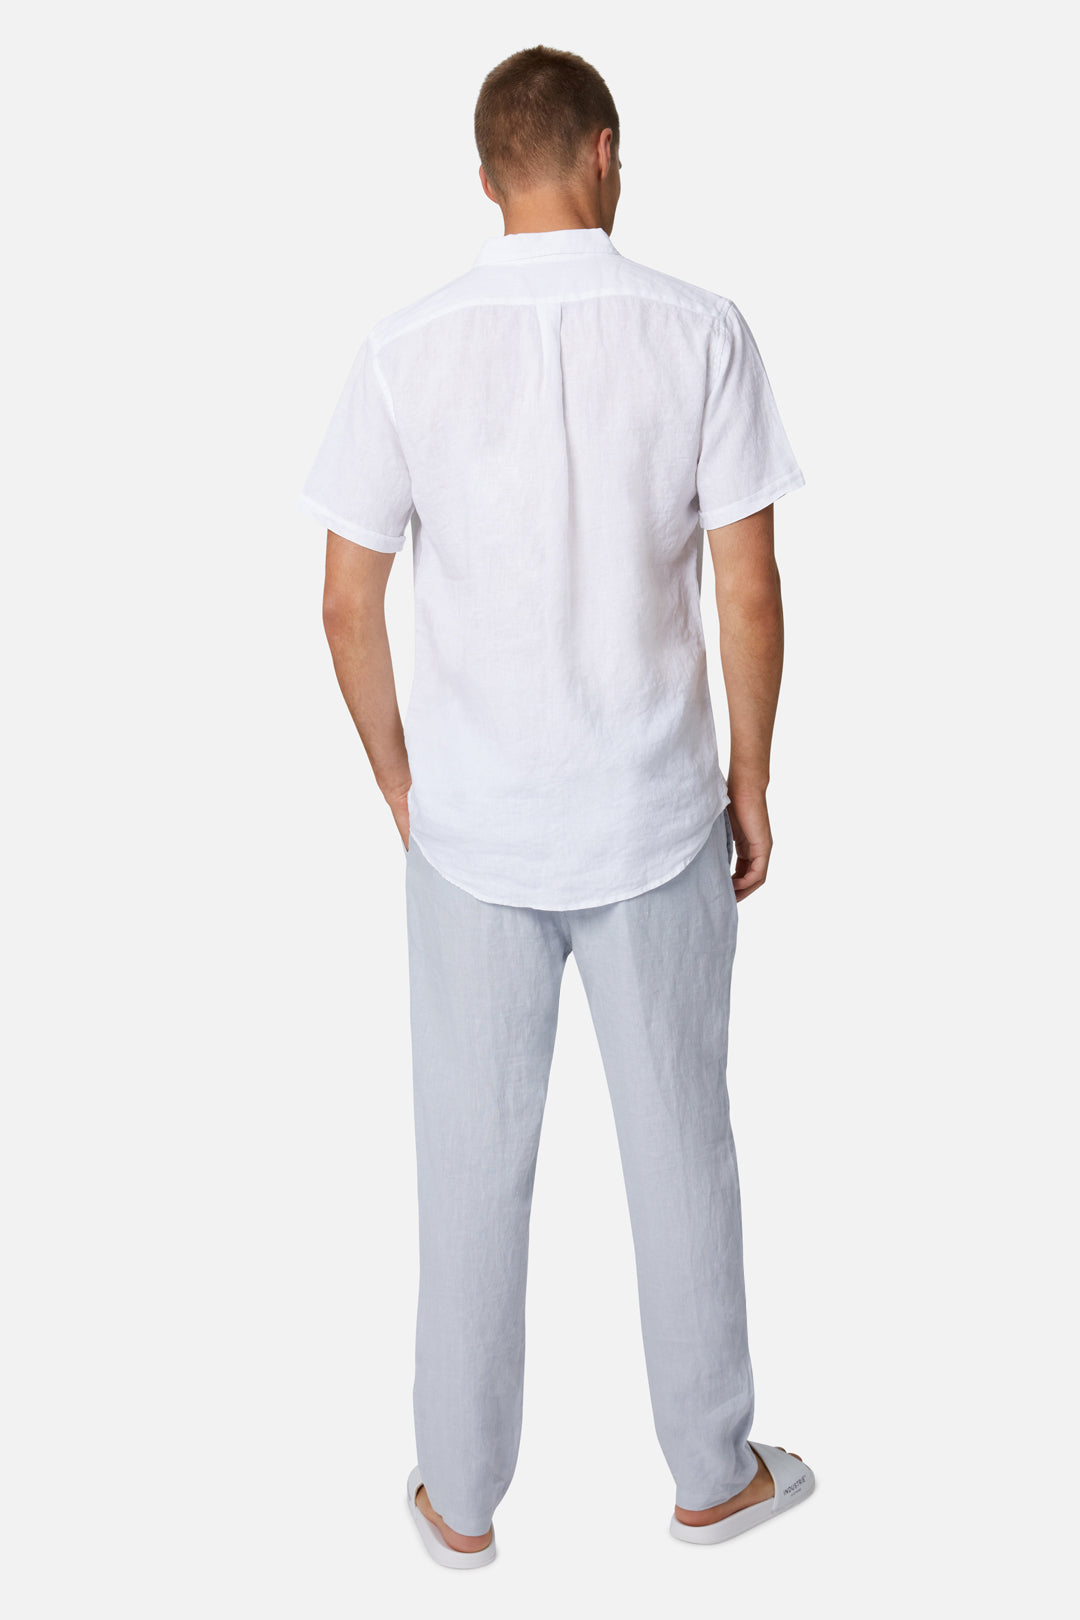 The Tennyson Linen S/S Shirt - White